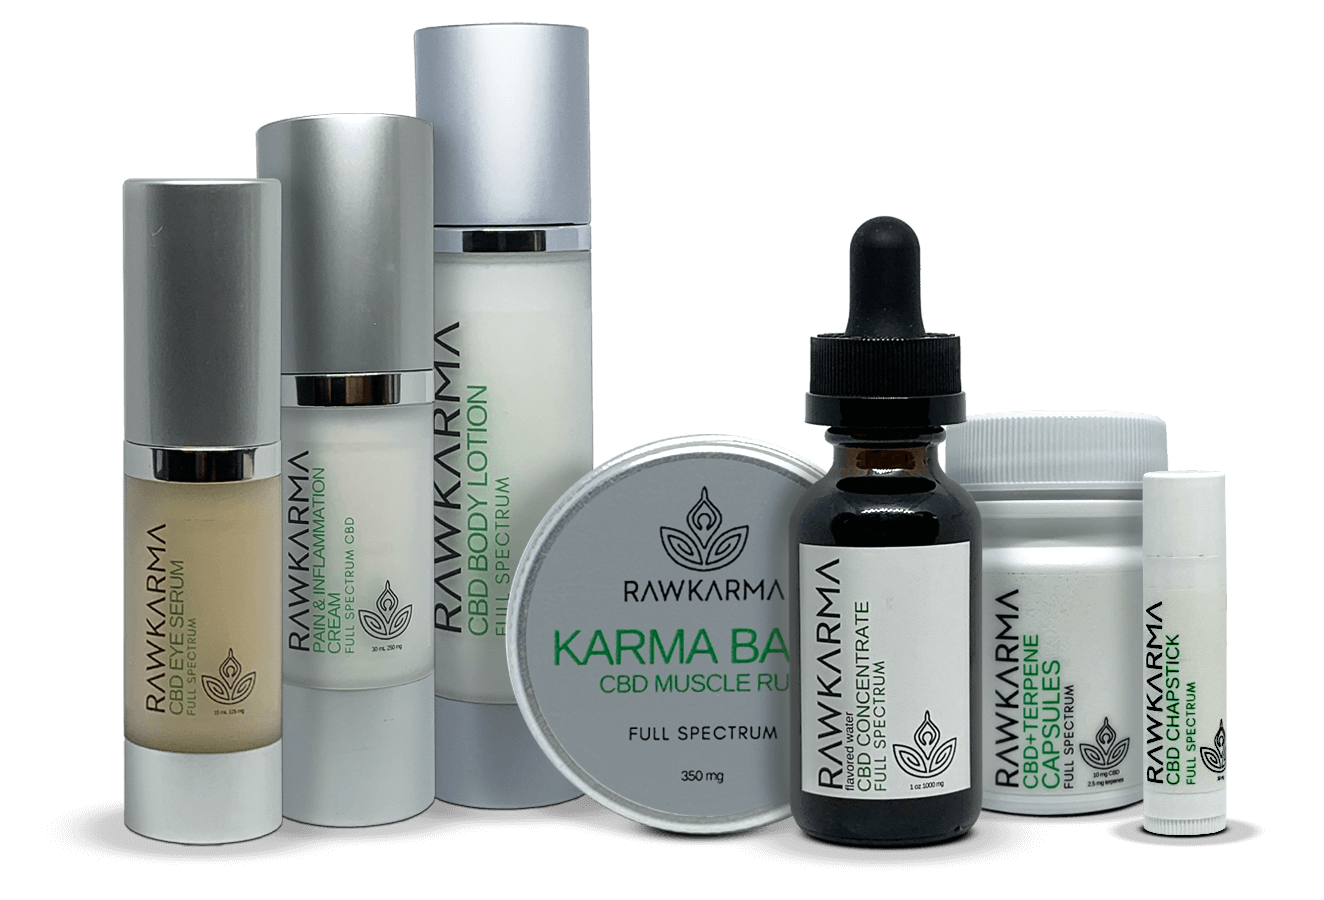 RawKarma-CBD-all-products